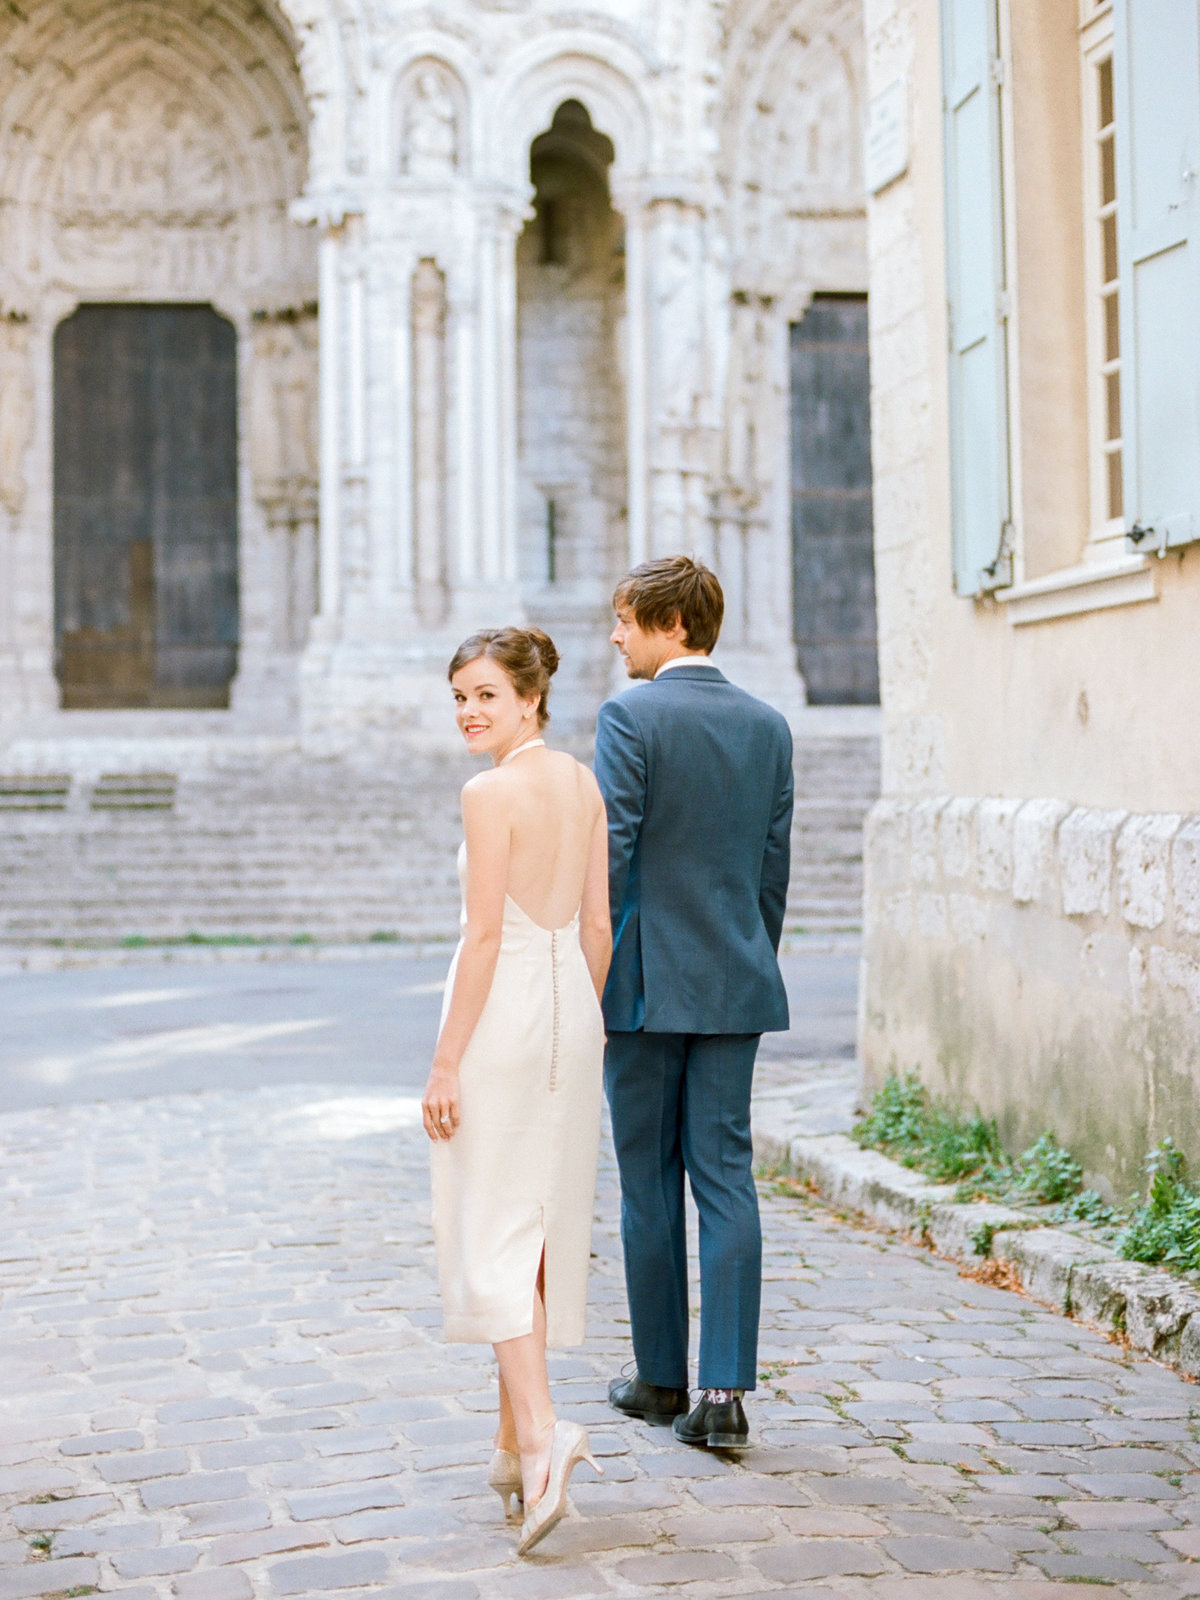 couple walking on french cobblestone street